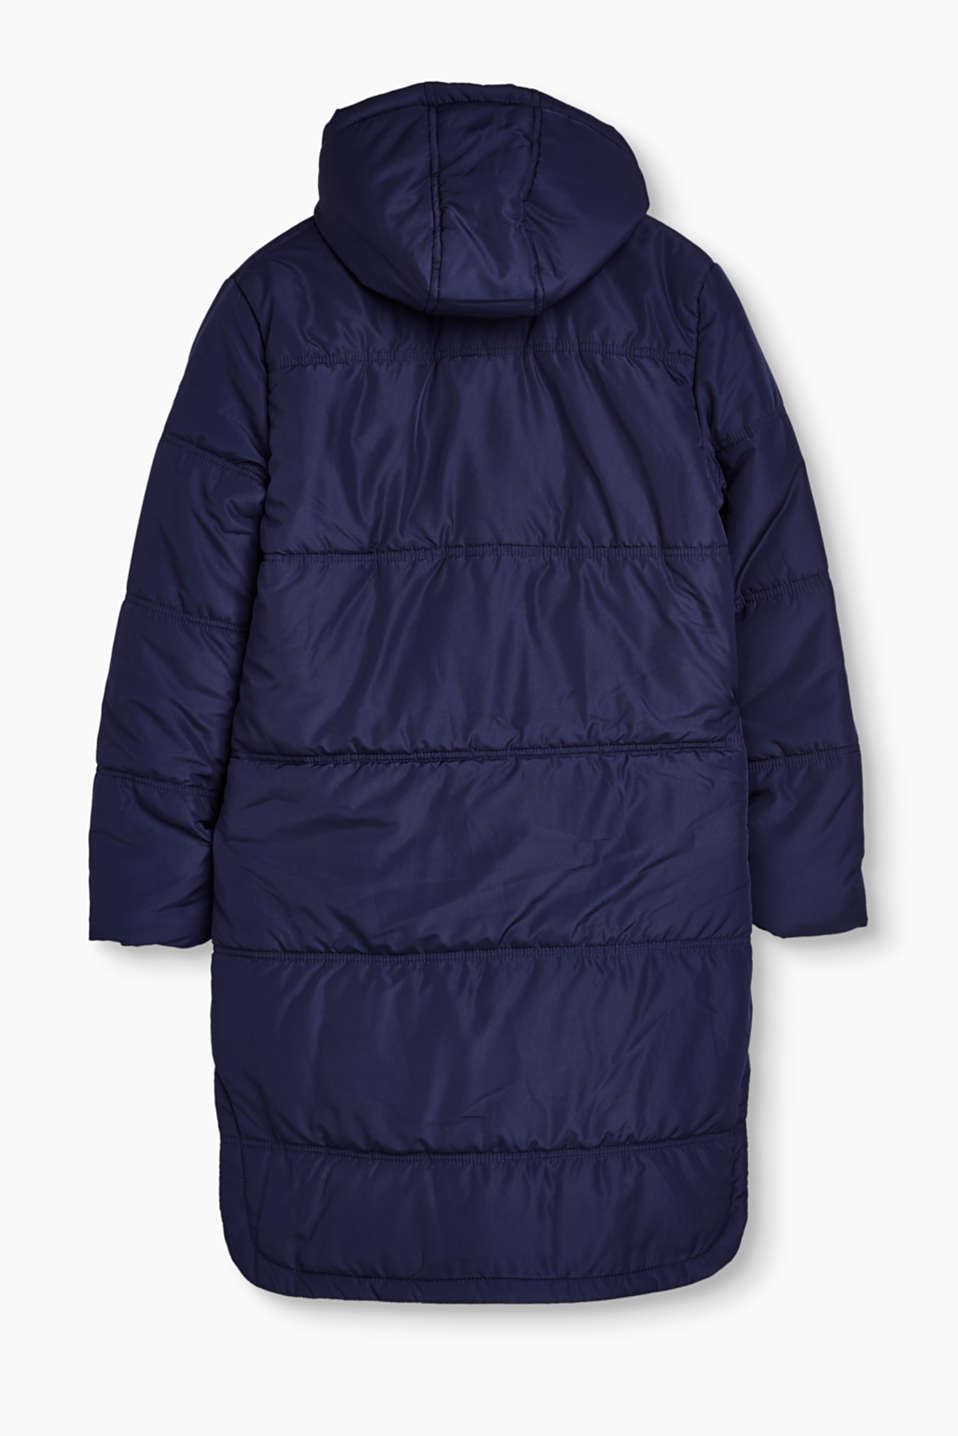 All-weather coat with hood